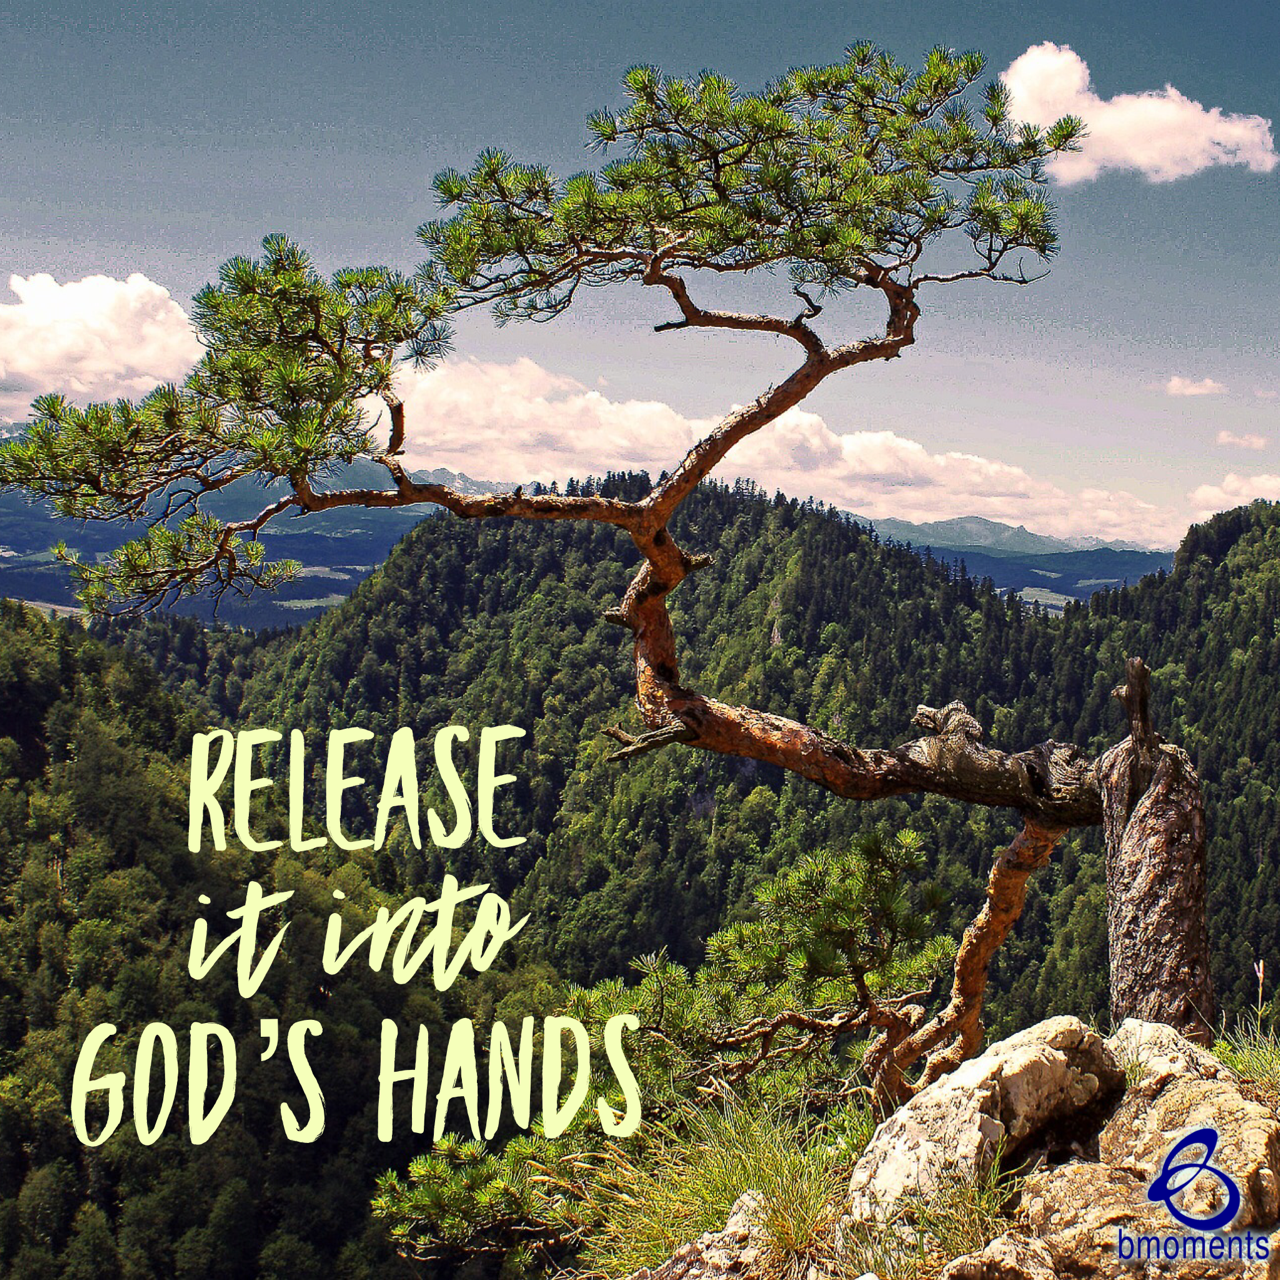 Release What Is Crooked Into God's Hands